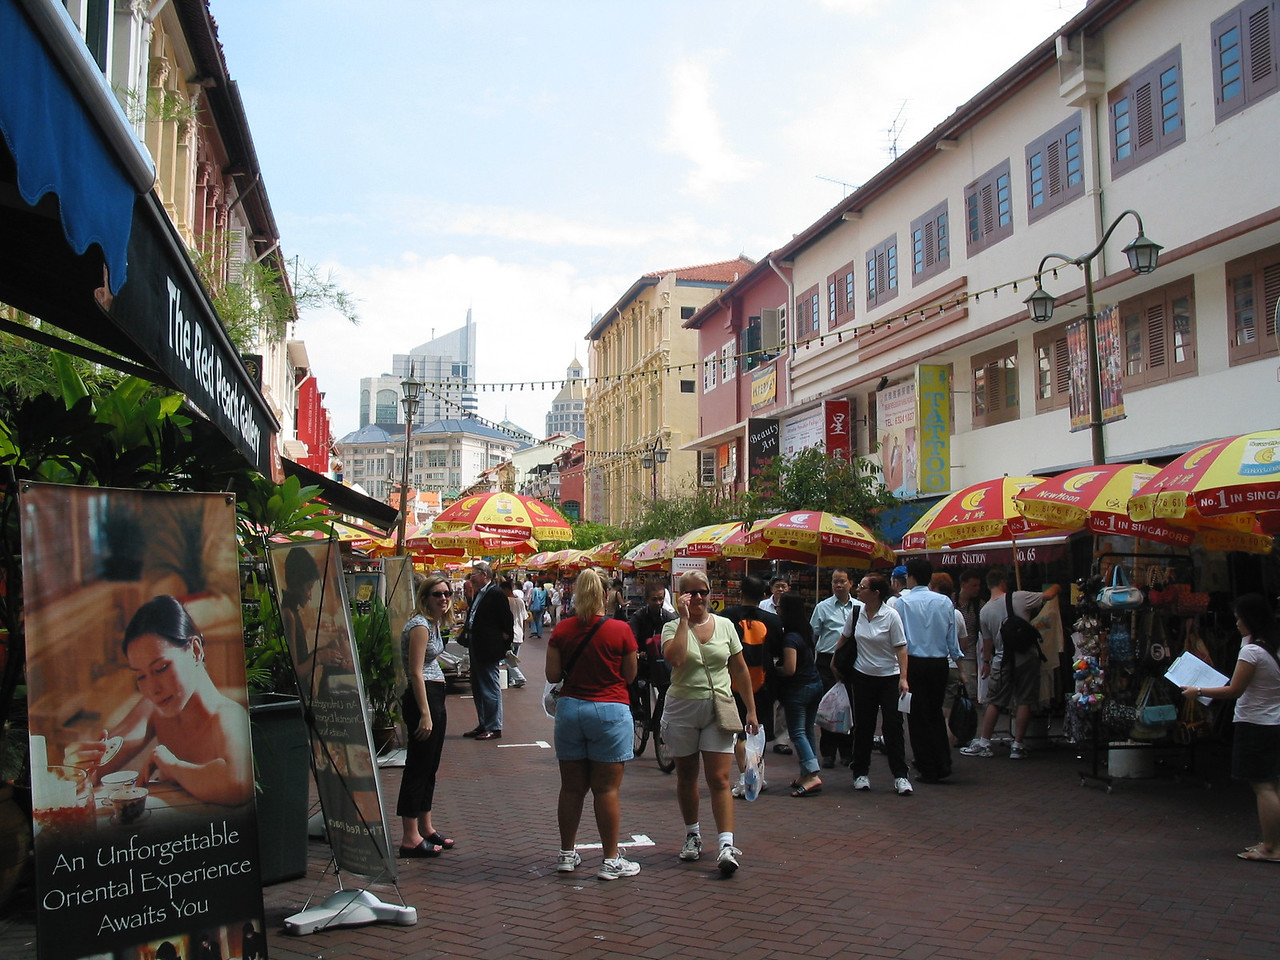 In Chinatown, you can find a great place to have lunch as well as great bargains.